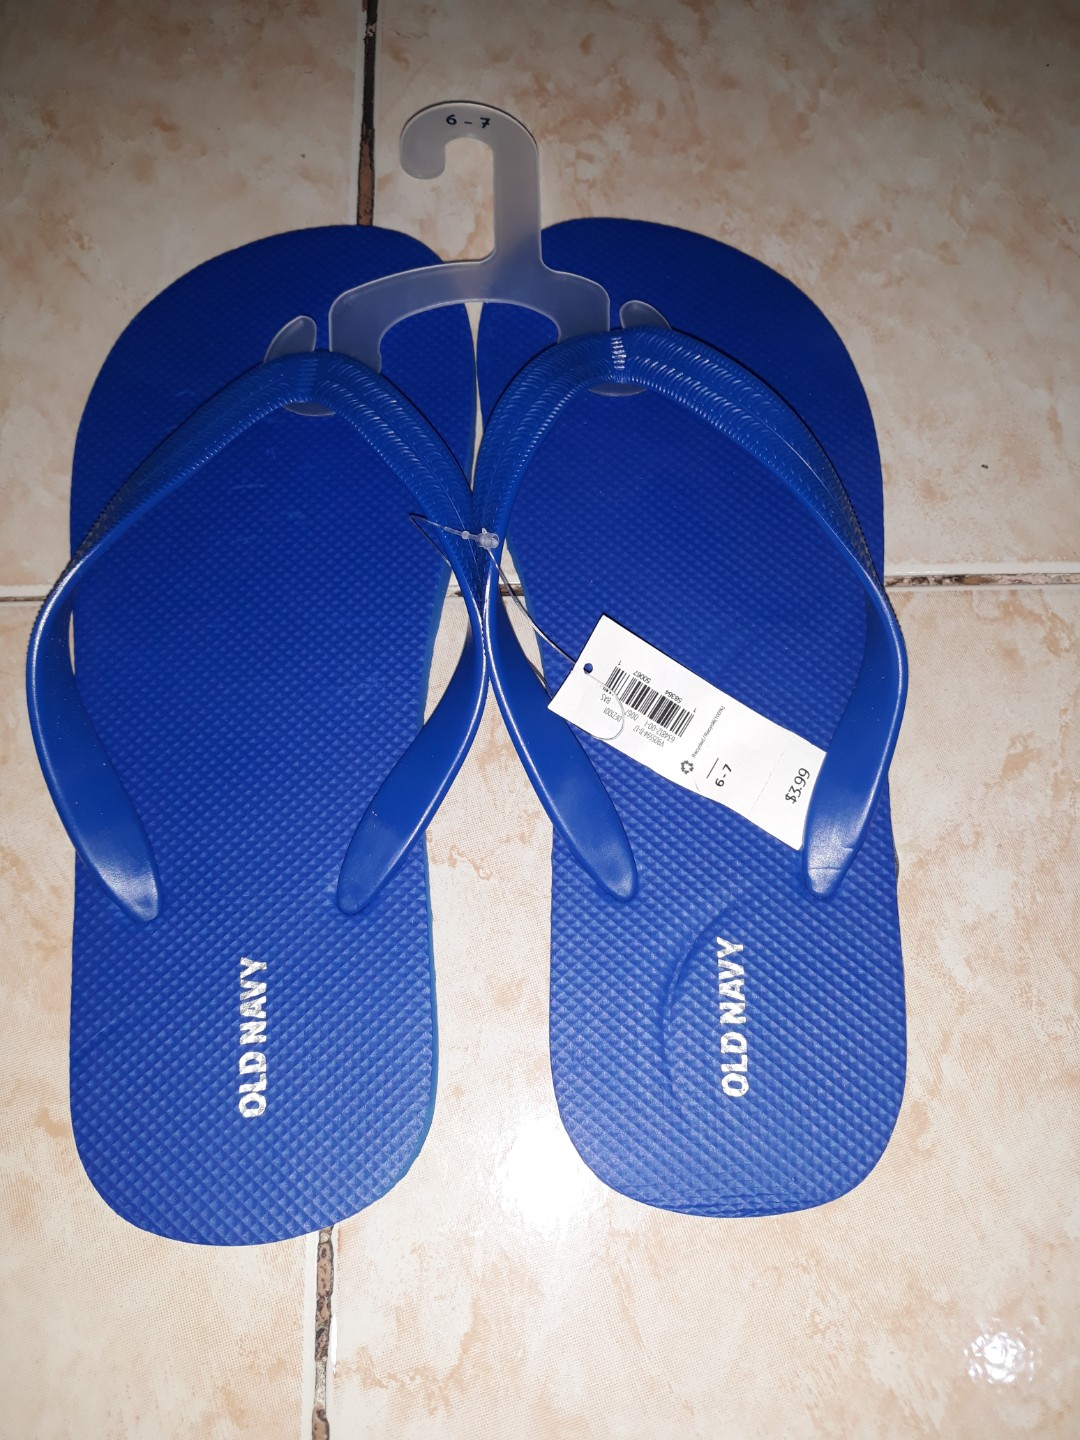 76198a80eabbb Old navy slippers size 6-7 for mens